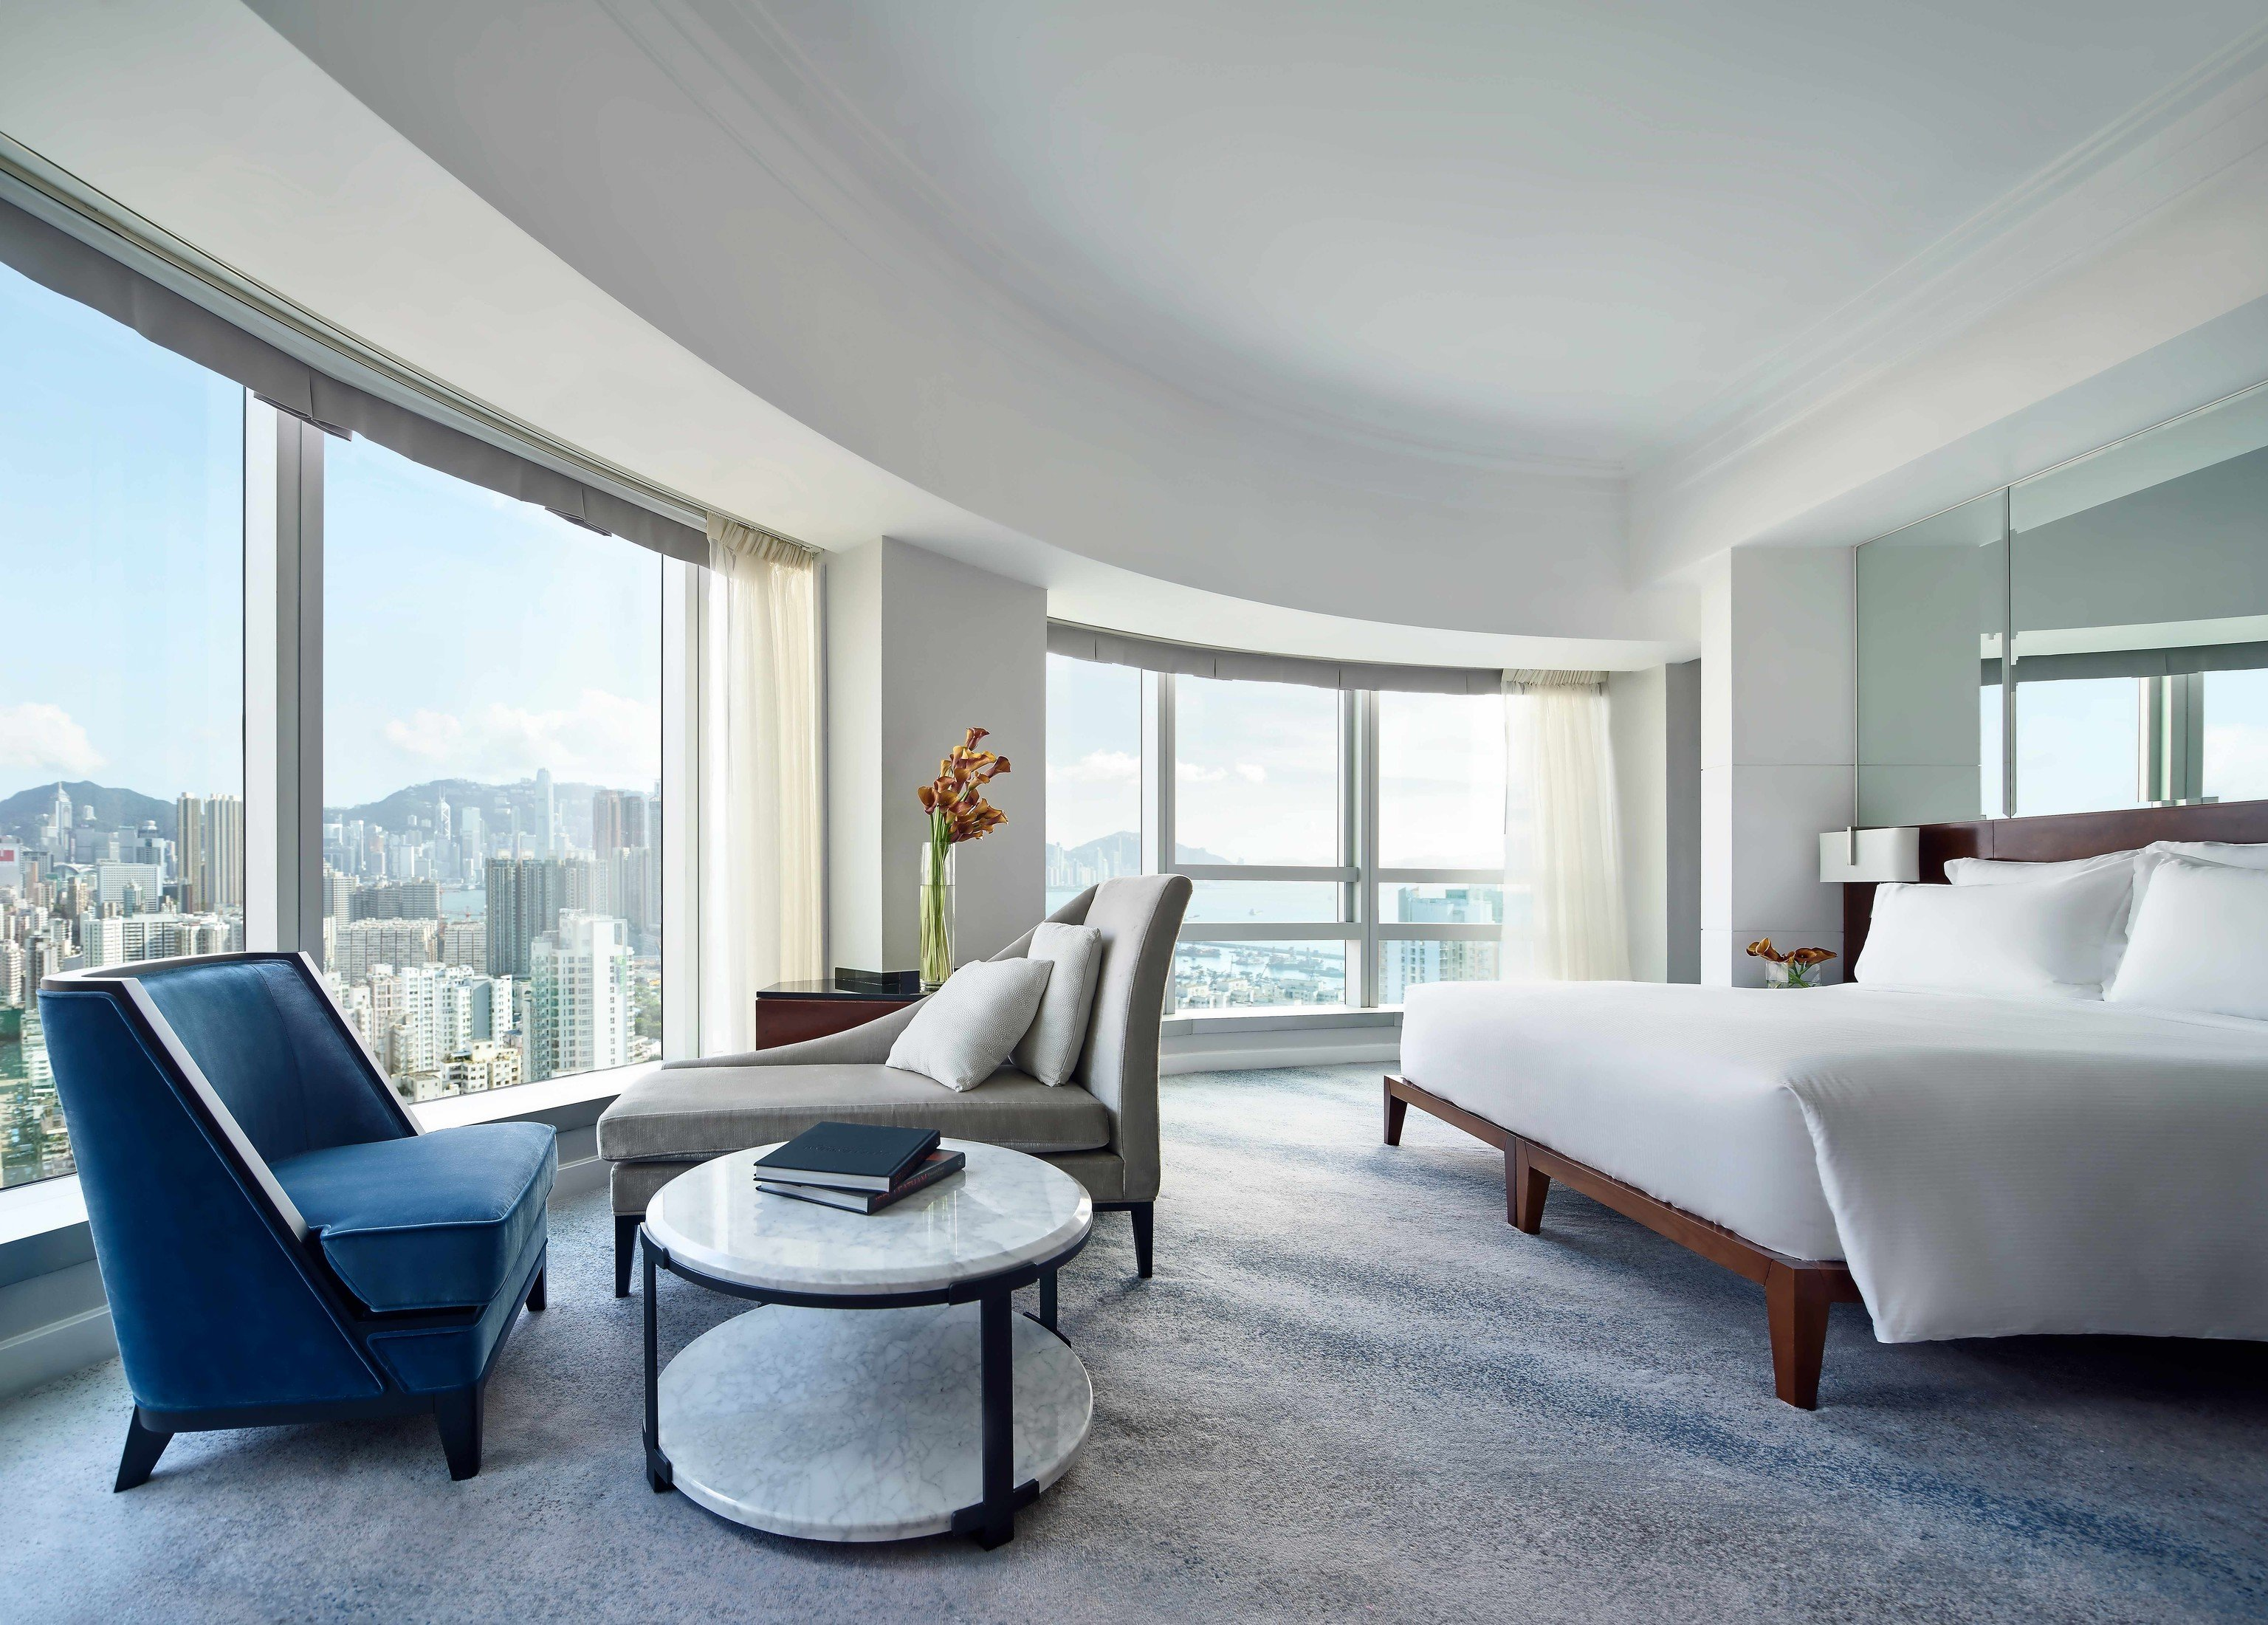 Hotels indoor floor ceiling window room sofa wall Living property furniture living room hotel Suite interior design condominium real estate home Bedroom estate Design apartment area several